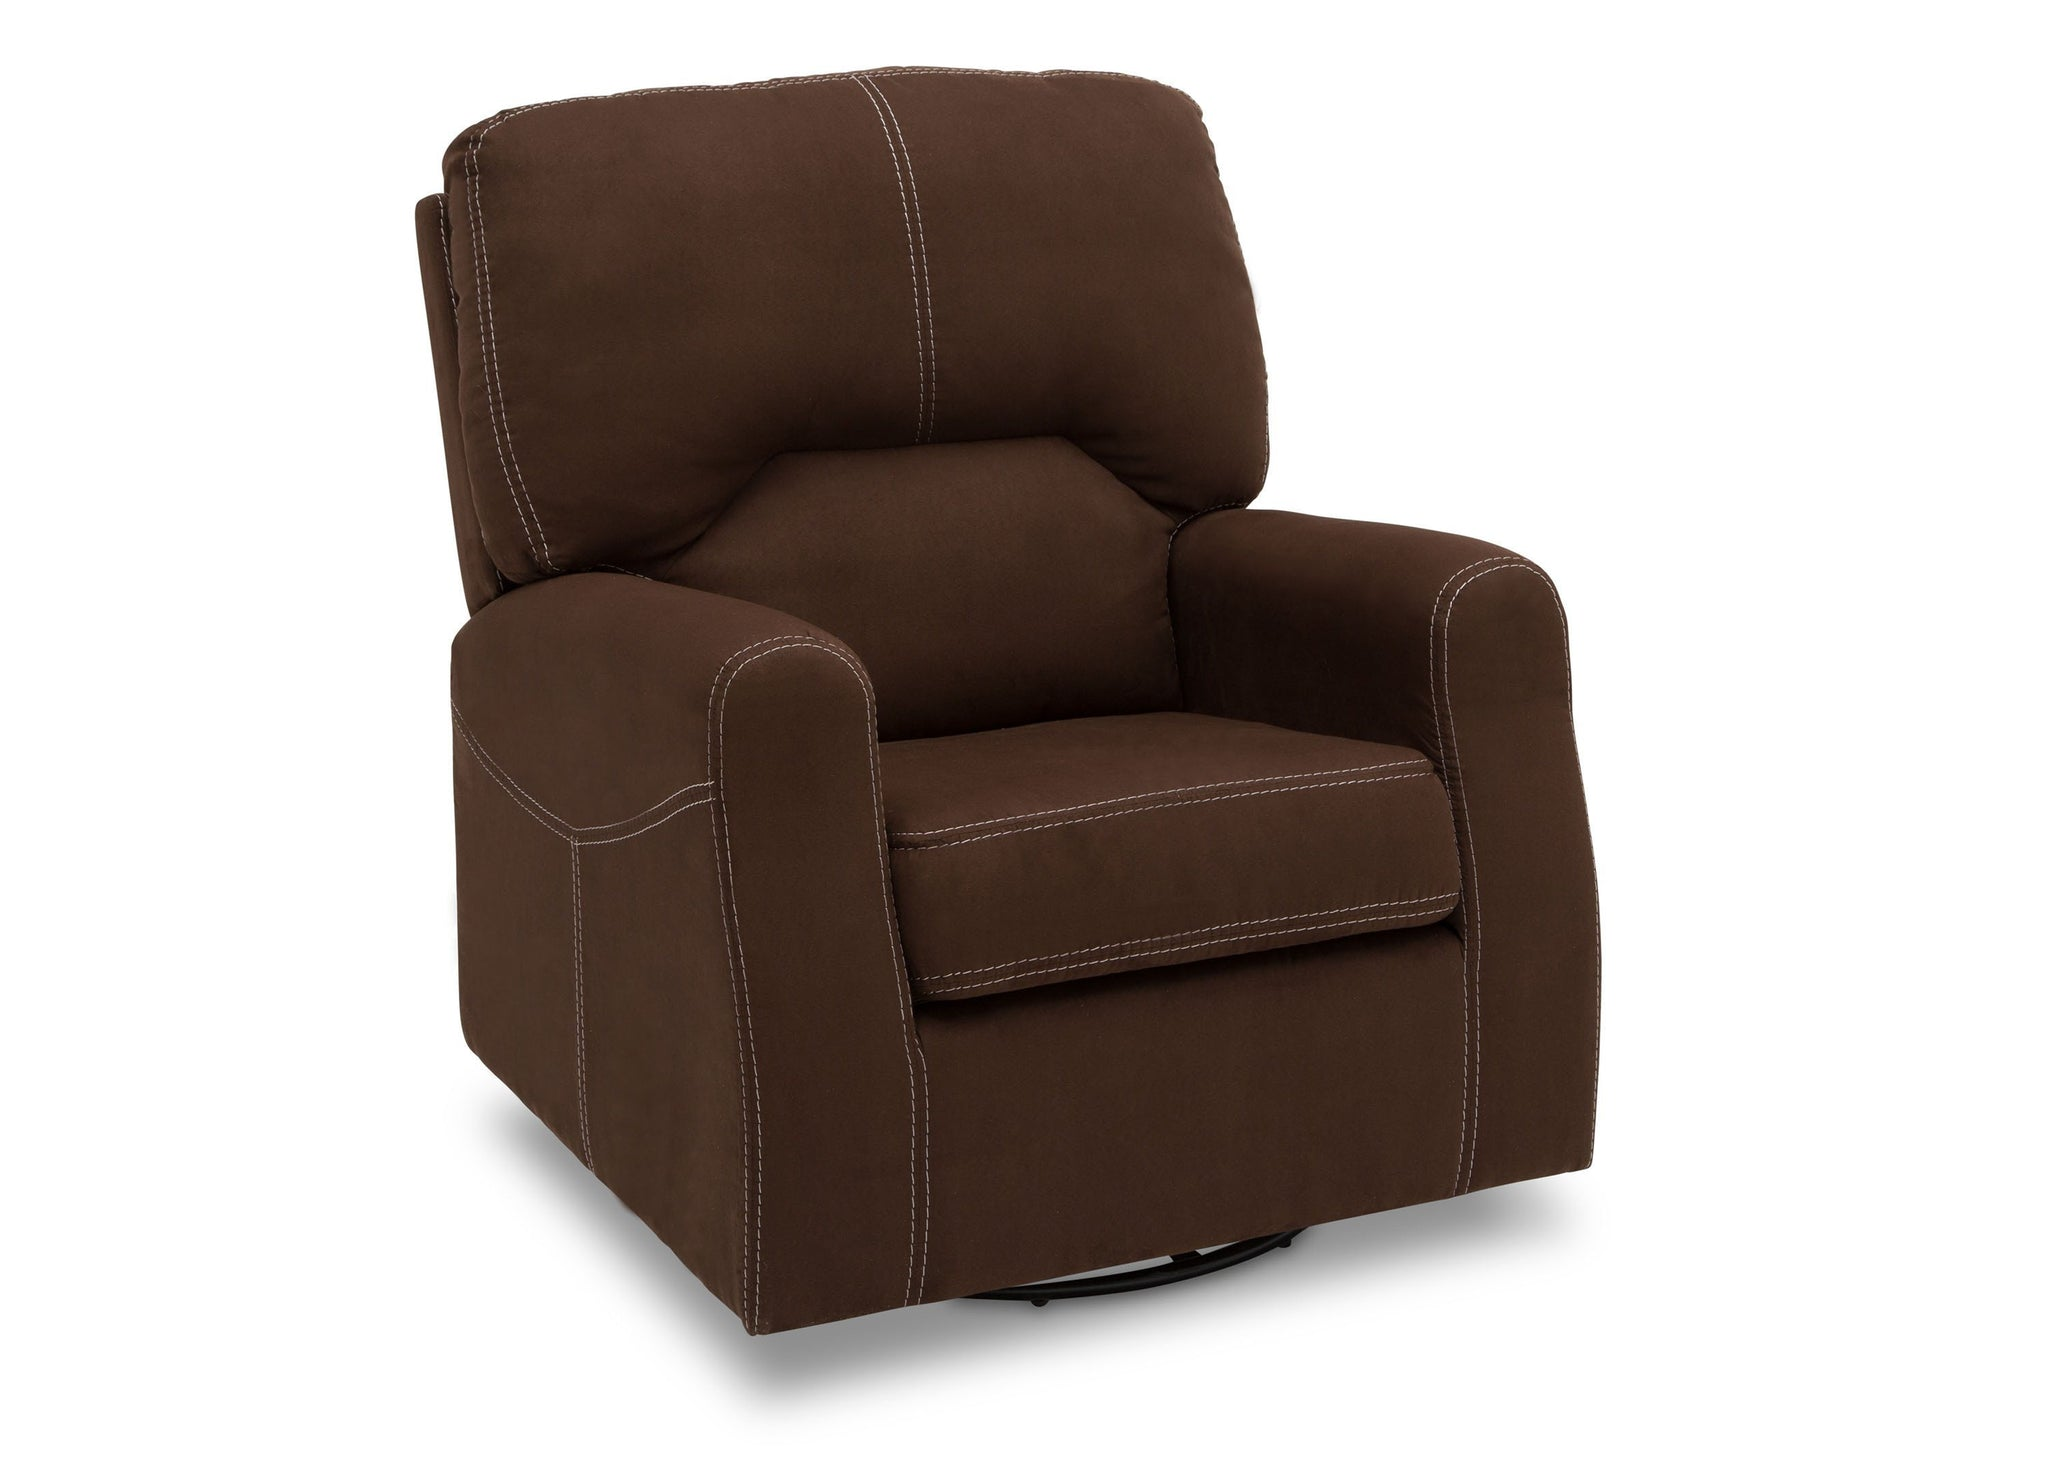 Delta Children Cocoa (258) Marshall Nursery Glider Swivel Rocker Chair, right side view, b3b